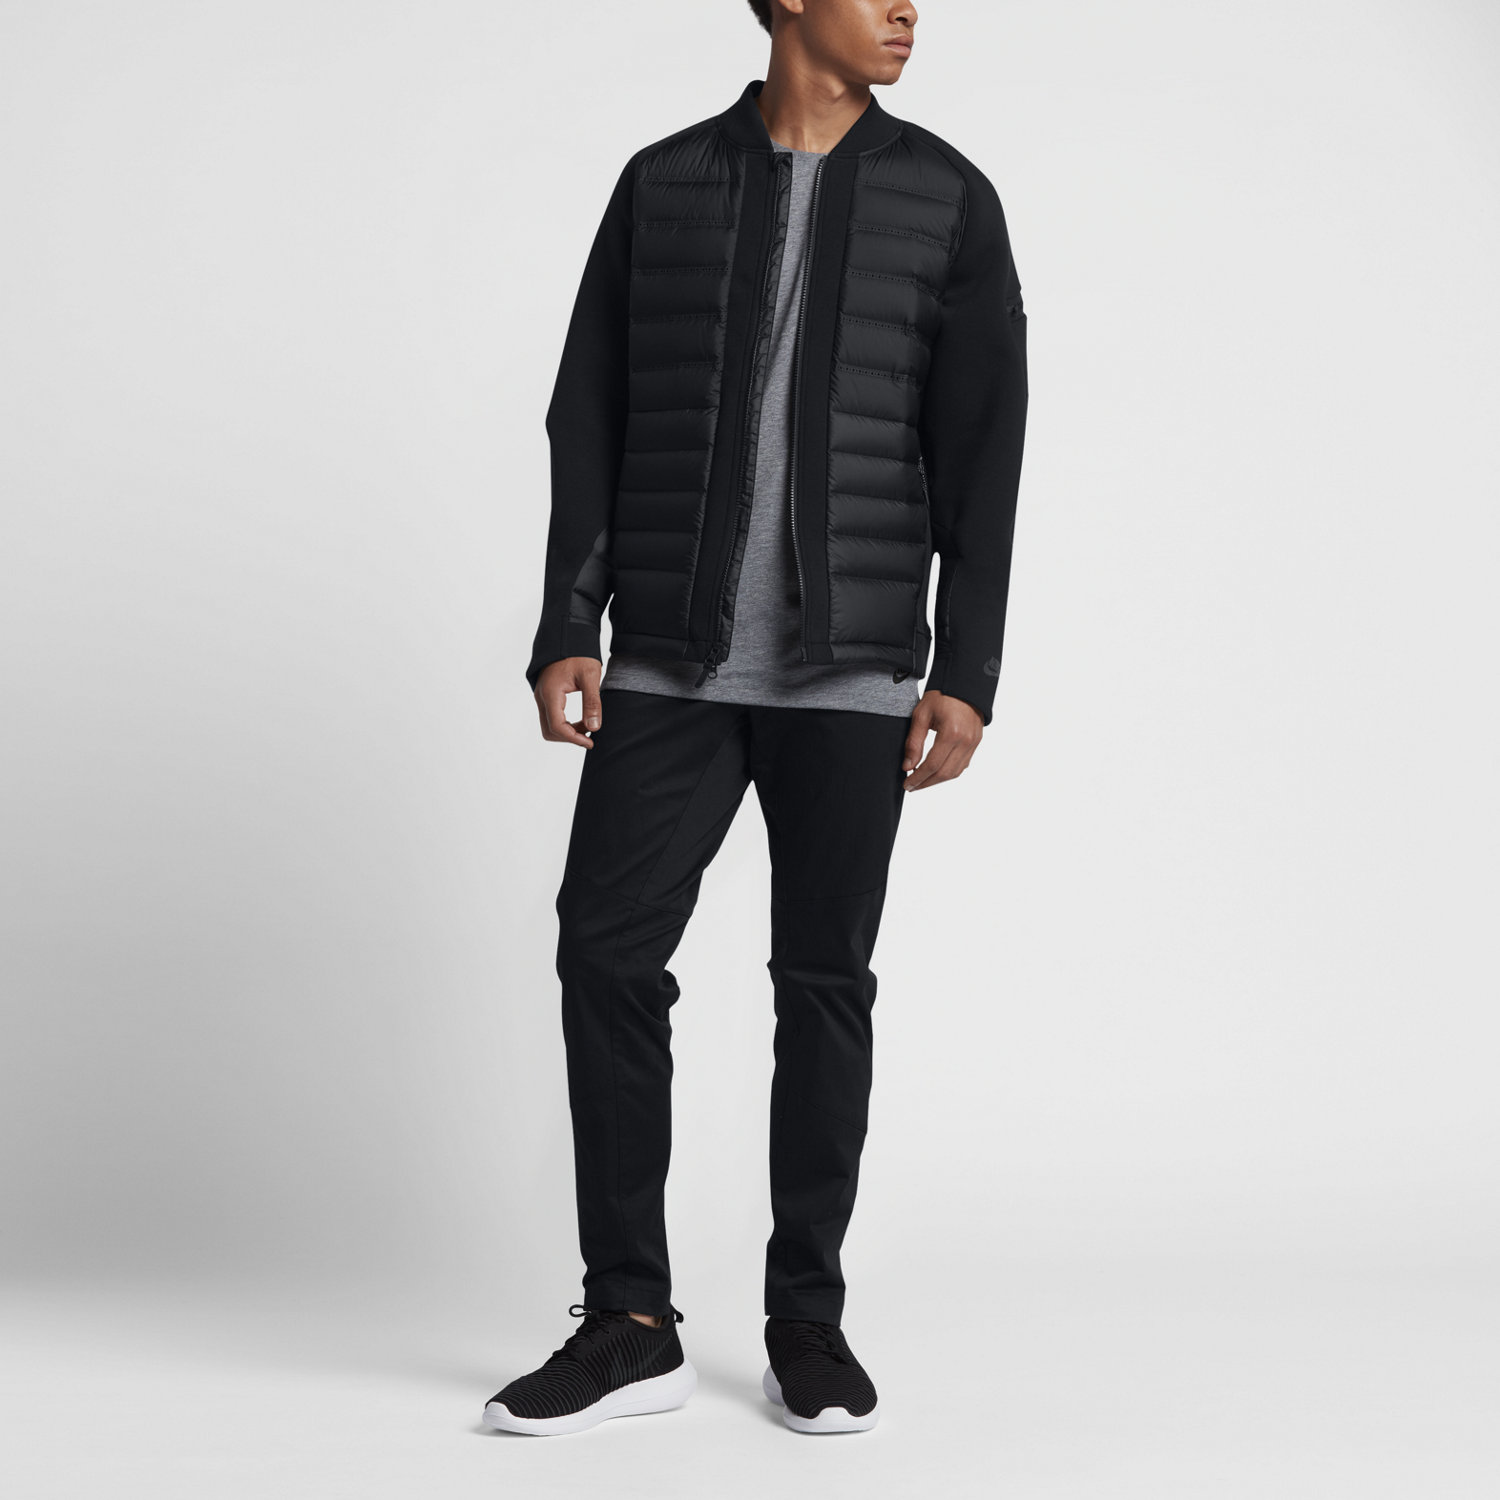 b18ad3b2c848 Nike Sportswear Tech Fleece AeroLoft Men s Down Bomber. Nike.com